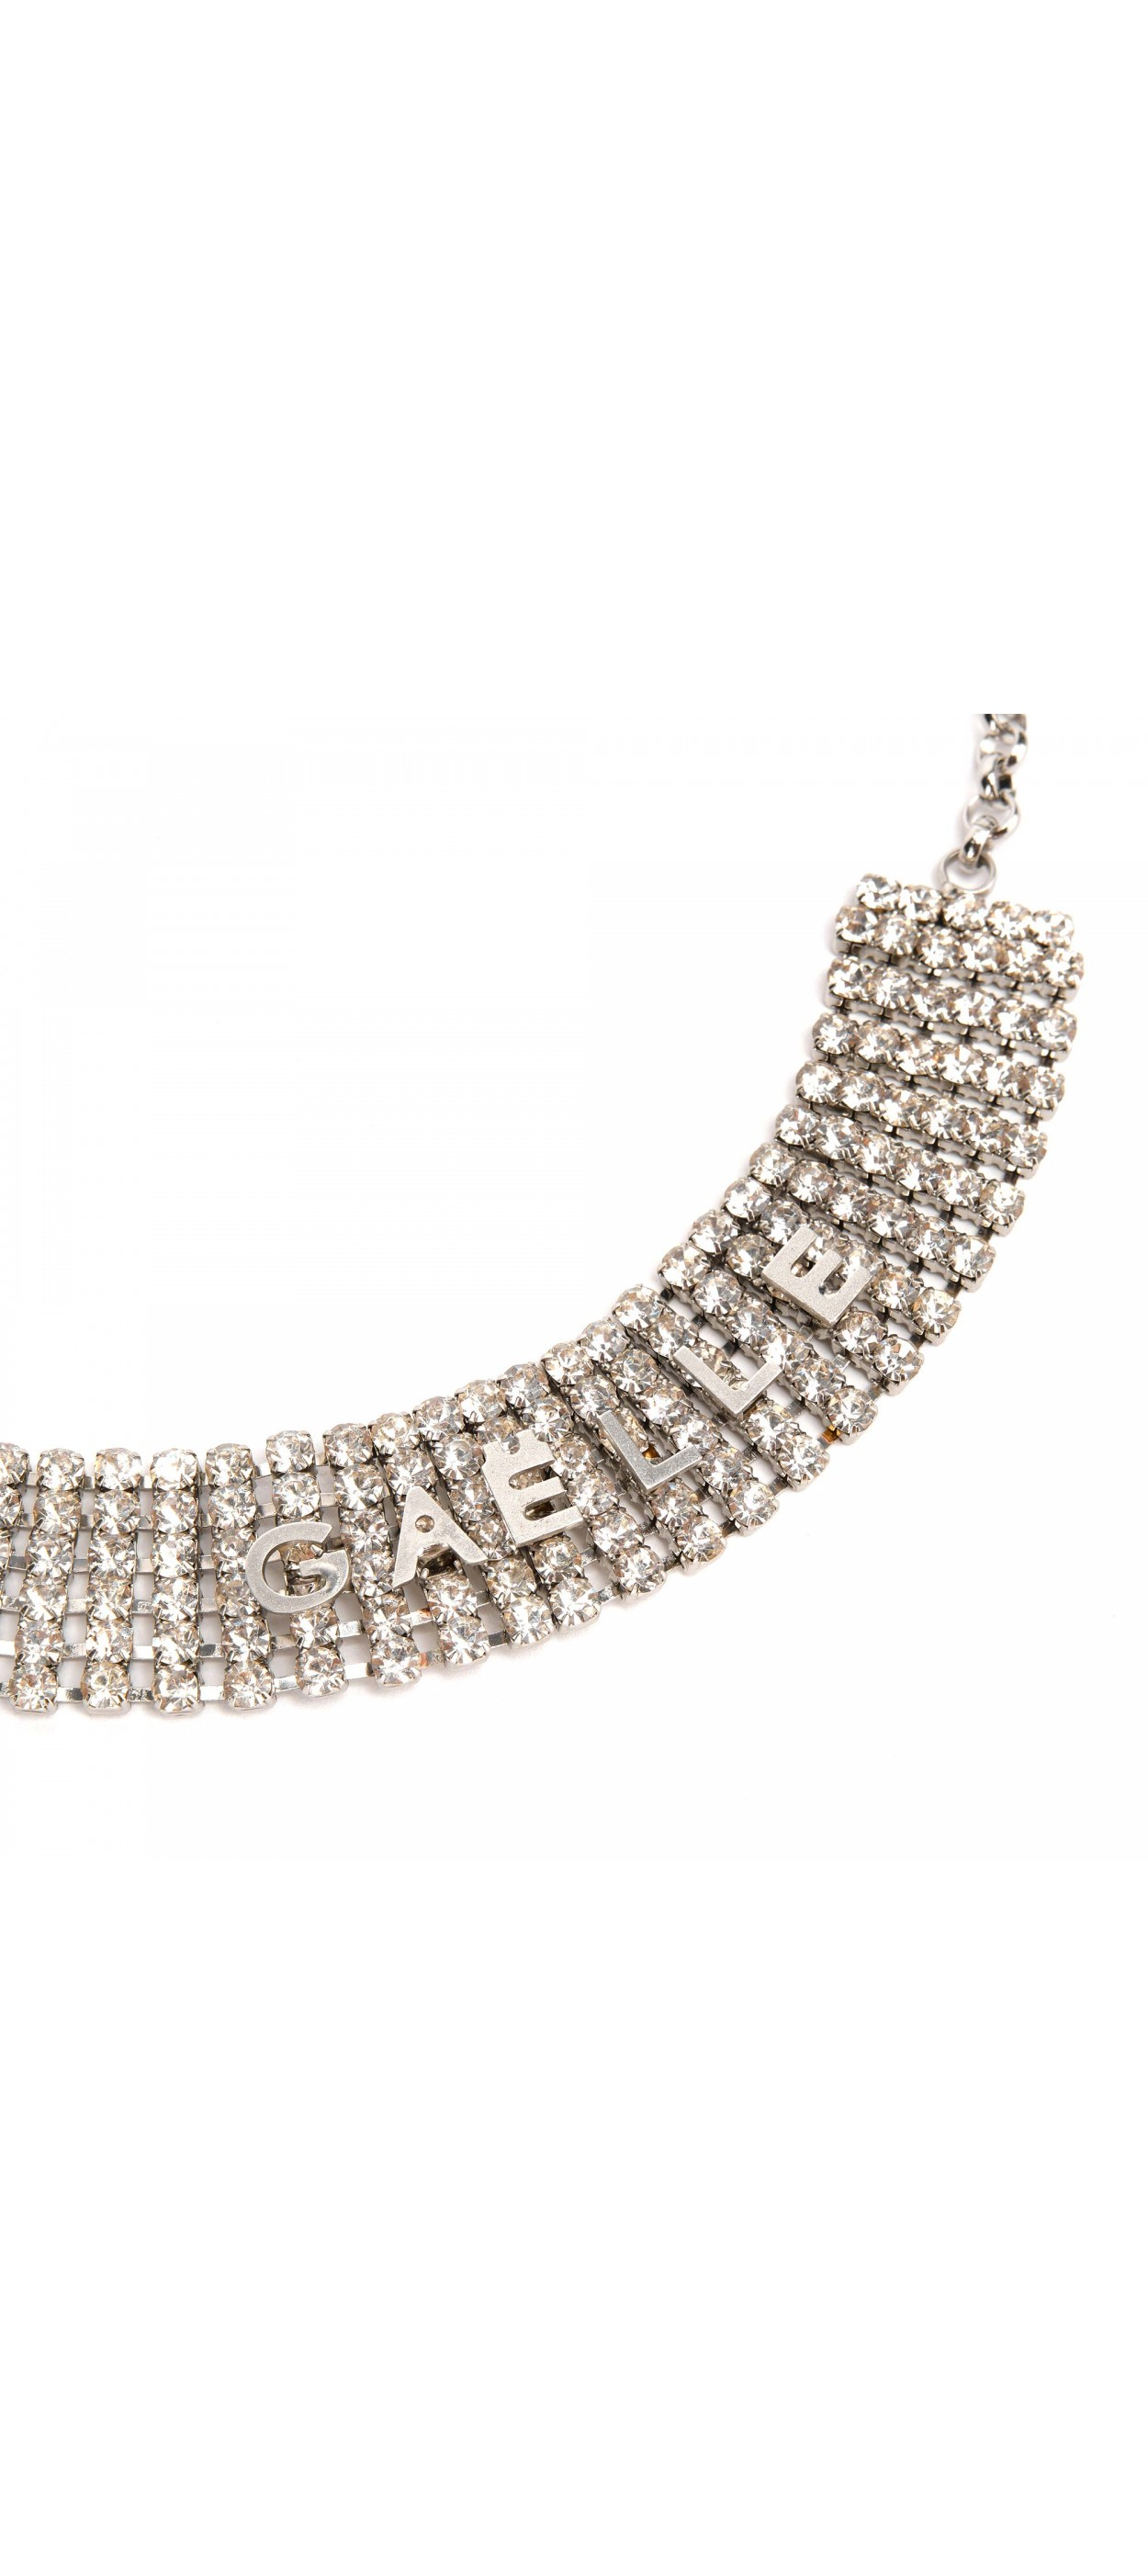 NECKLACE - GBDA2106 - GAELLE PARIS